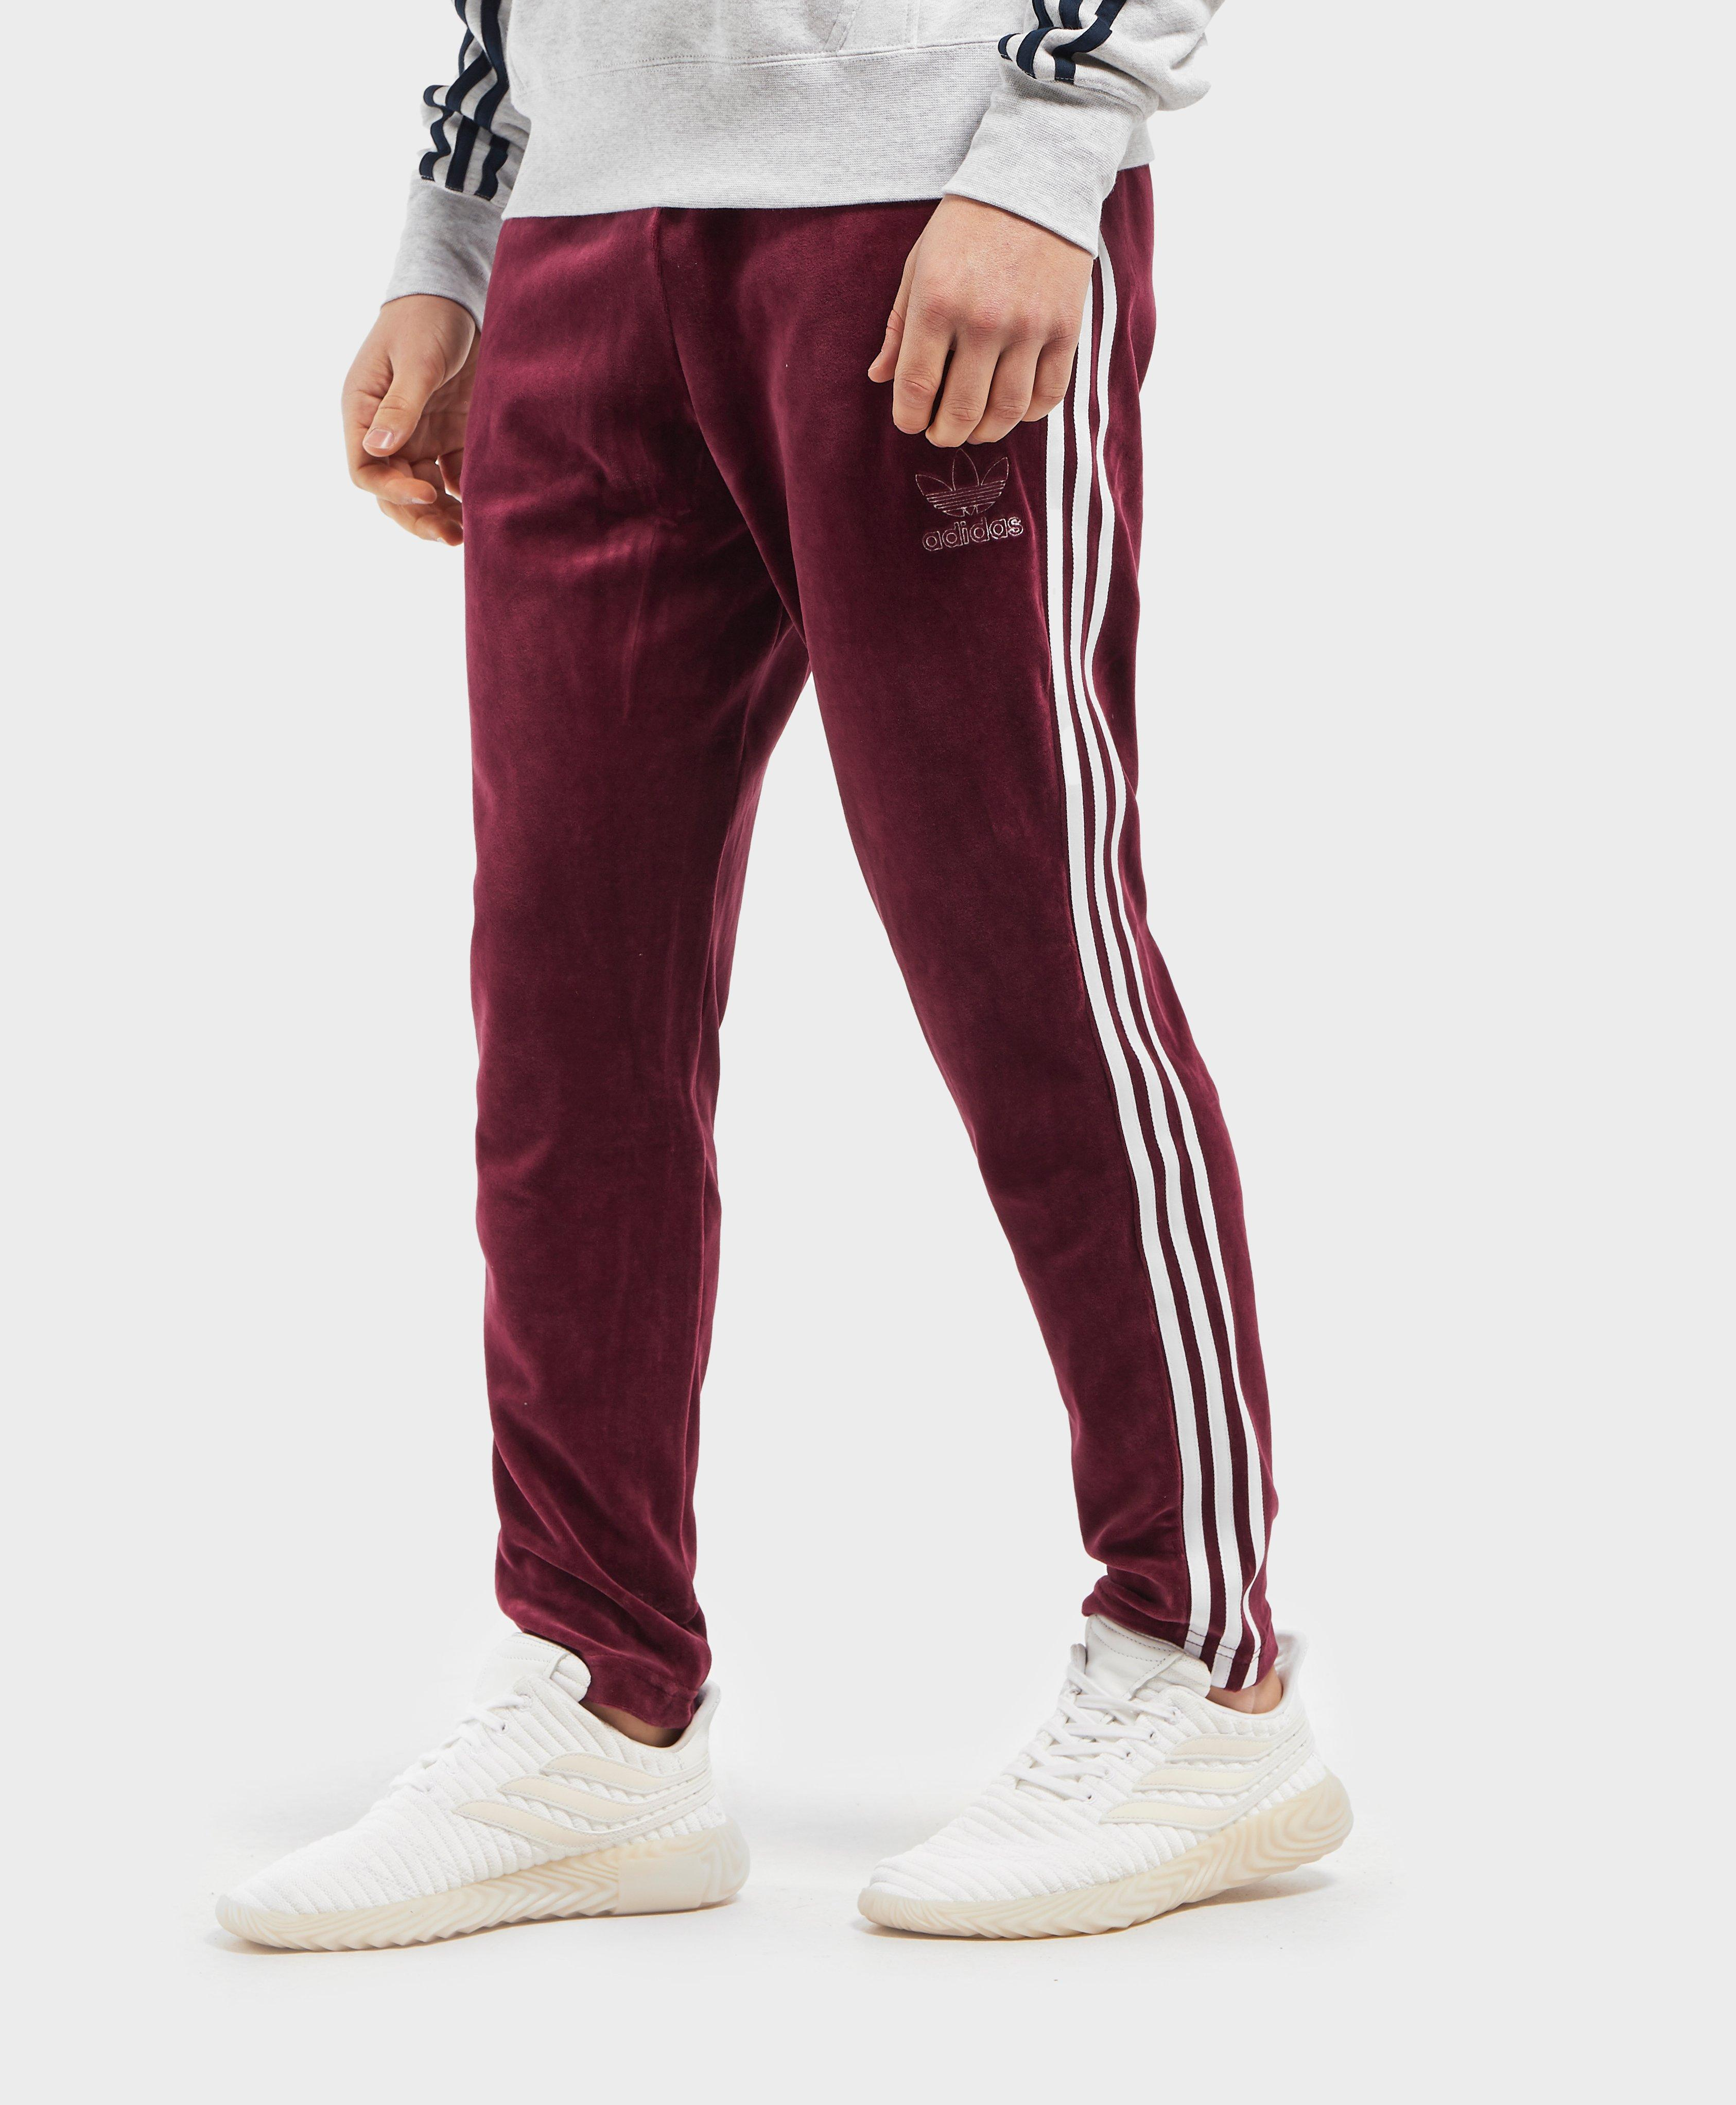 Velour Track Pants Adidas Promo Code For 75312 Ae6c7